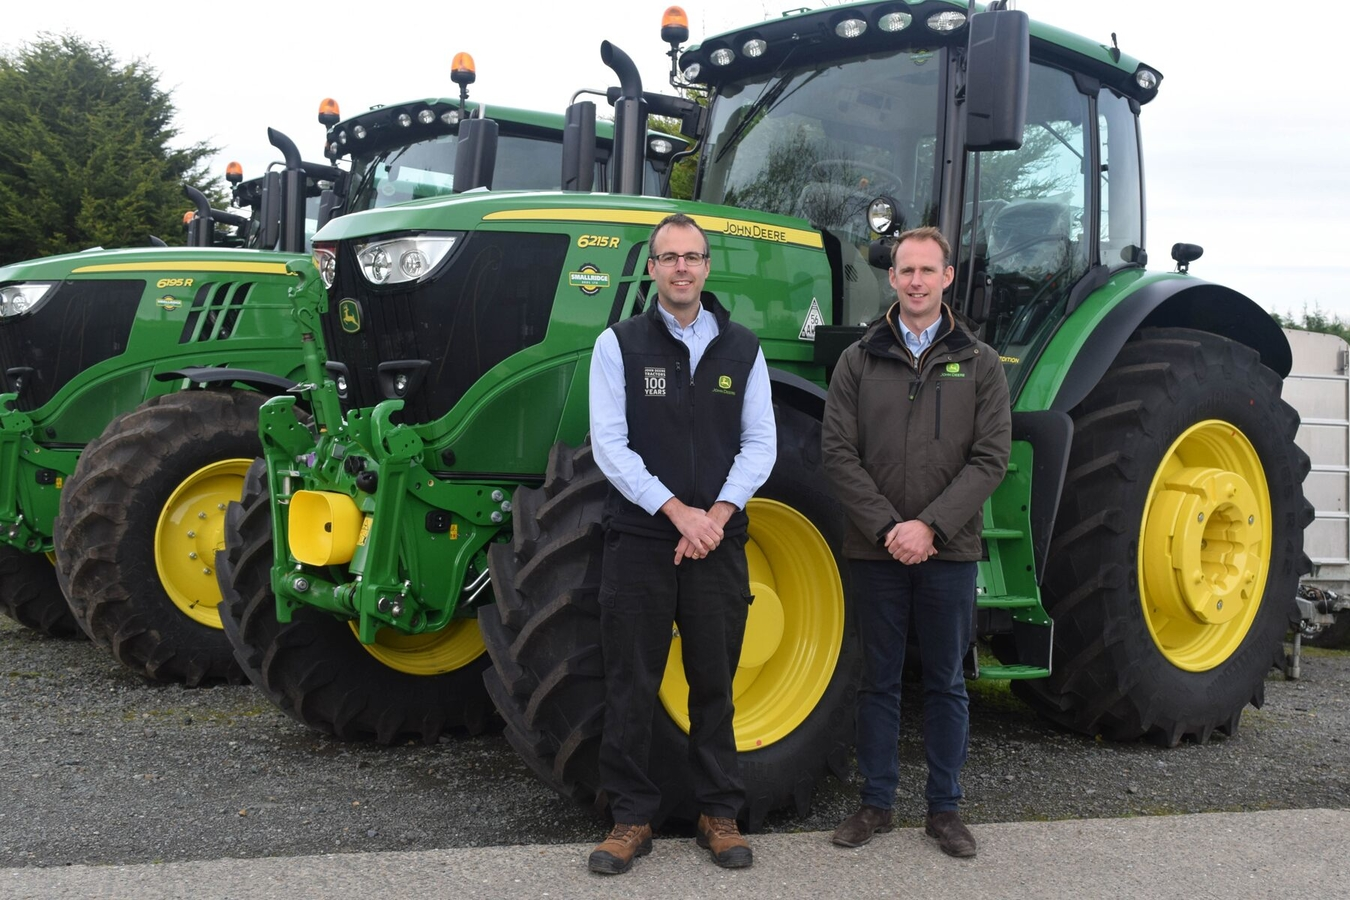 Dealer principal Simon Smallridge (left) and group sales manager Jason Toogood of John Deere agricultural dealership Smallridge Bros.